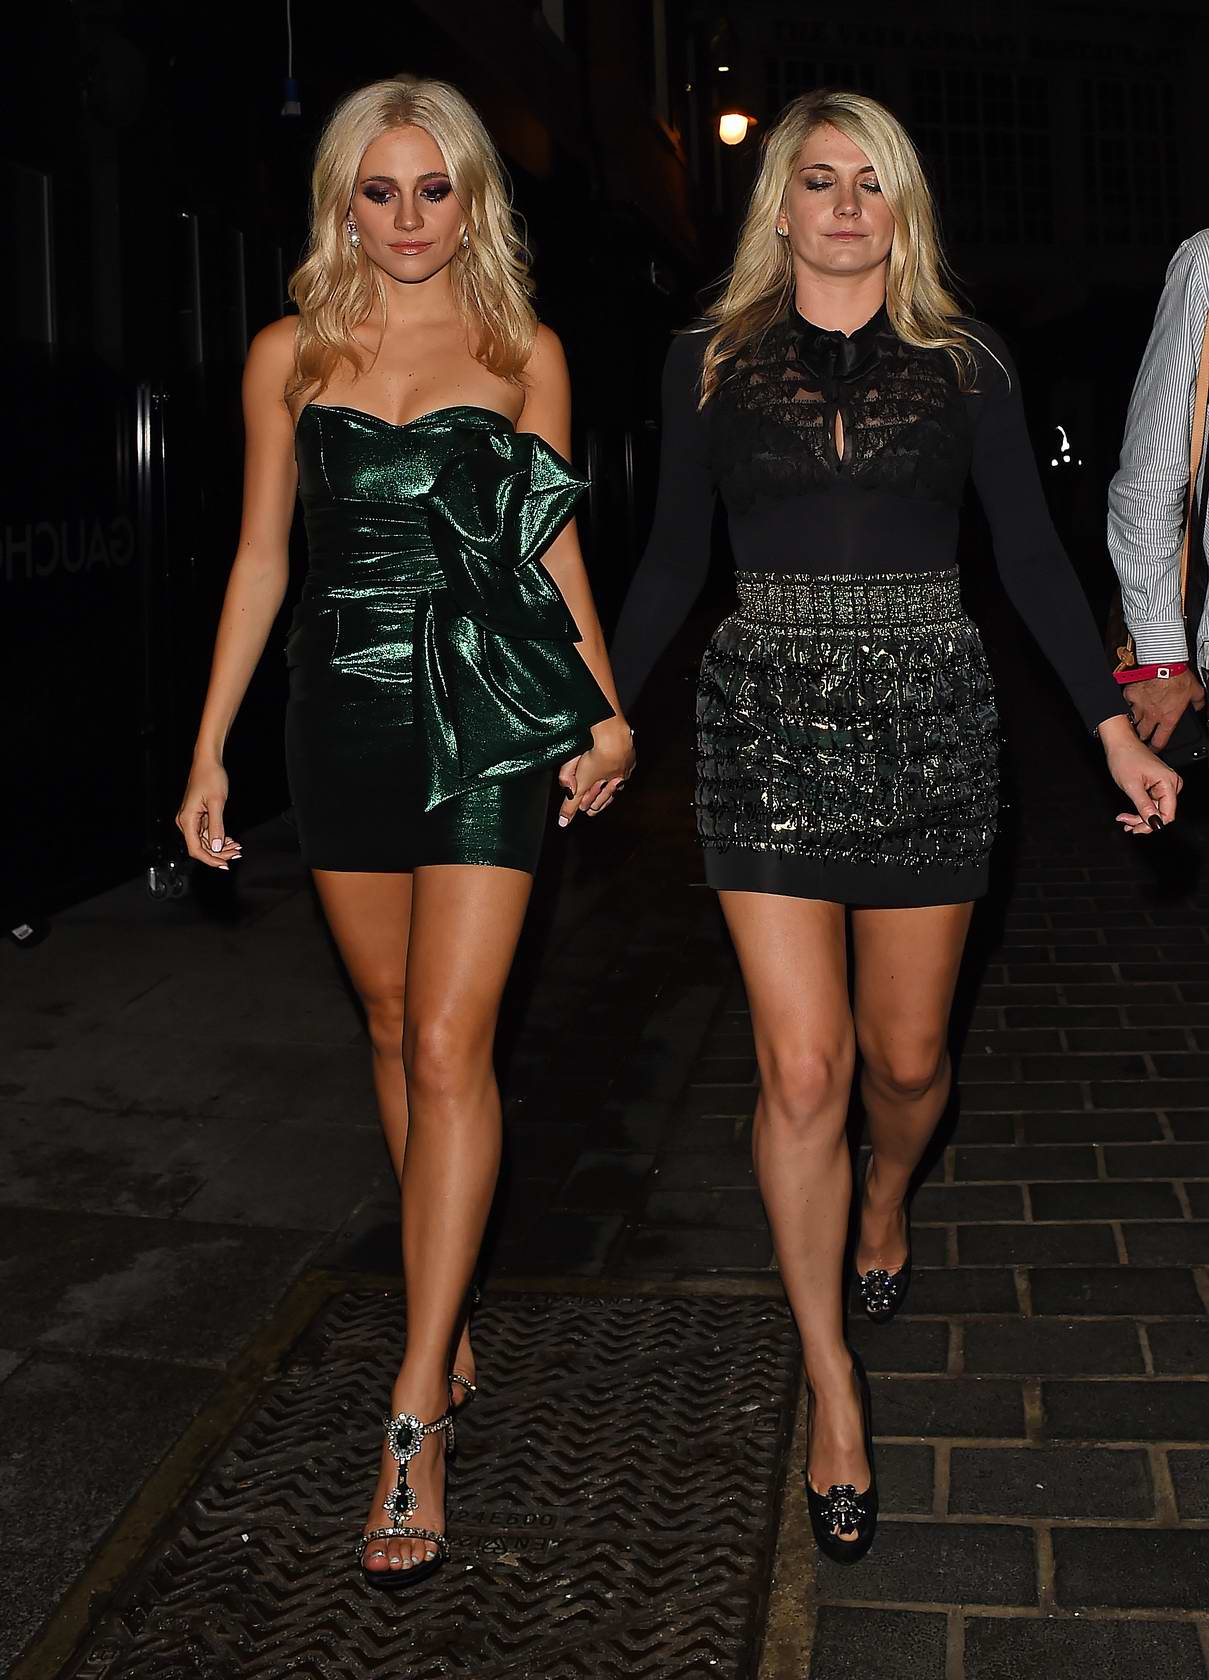 Pixie Lott leaves her album launch party at Cuckoo Club in London